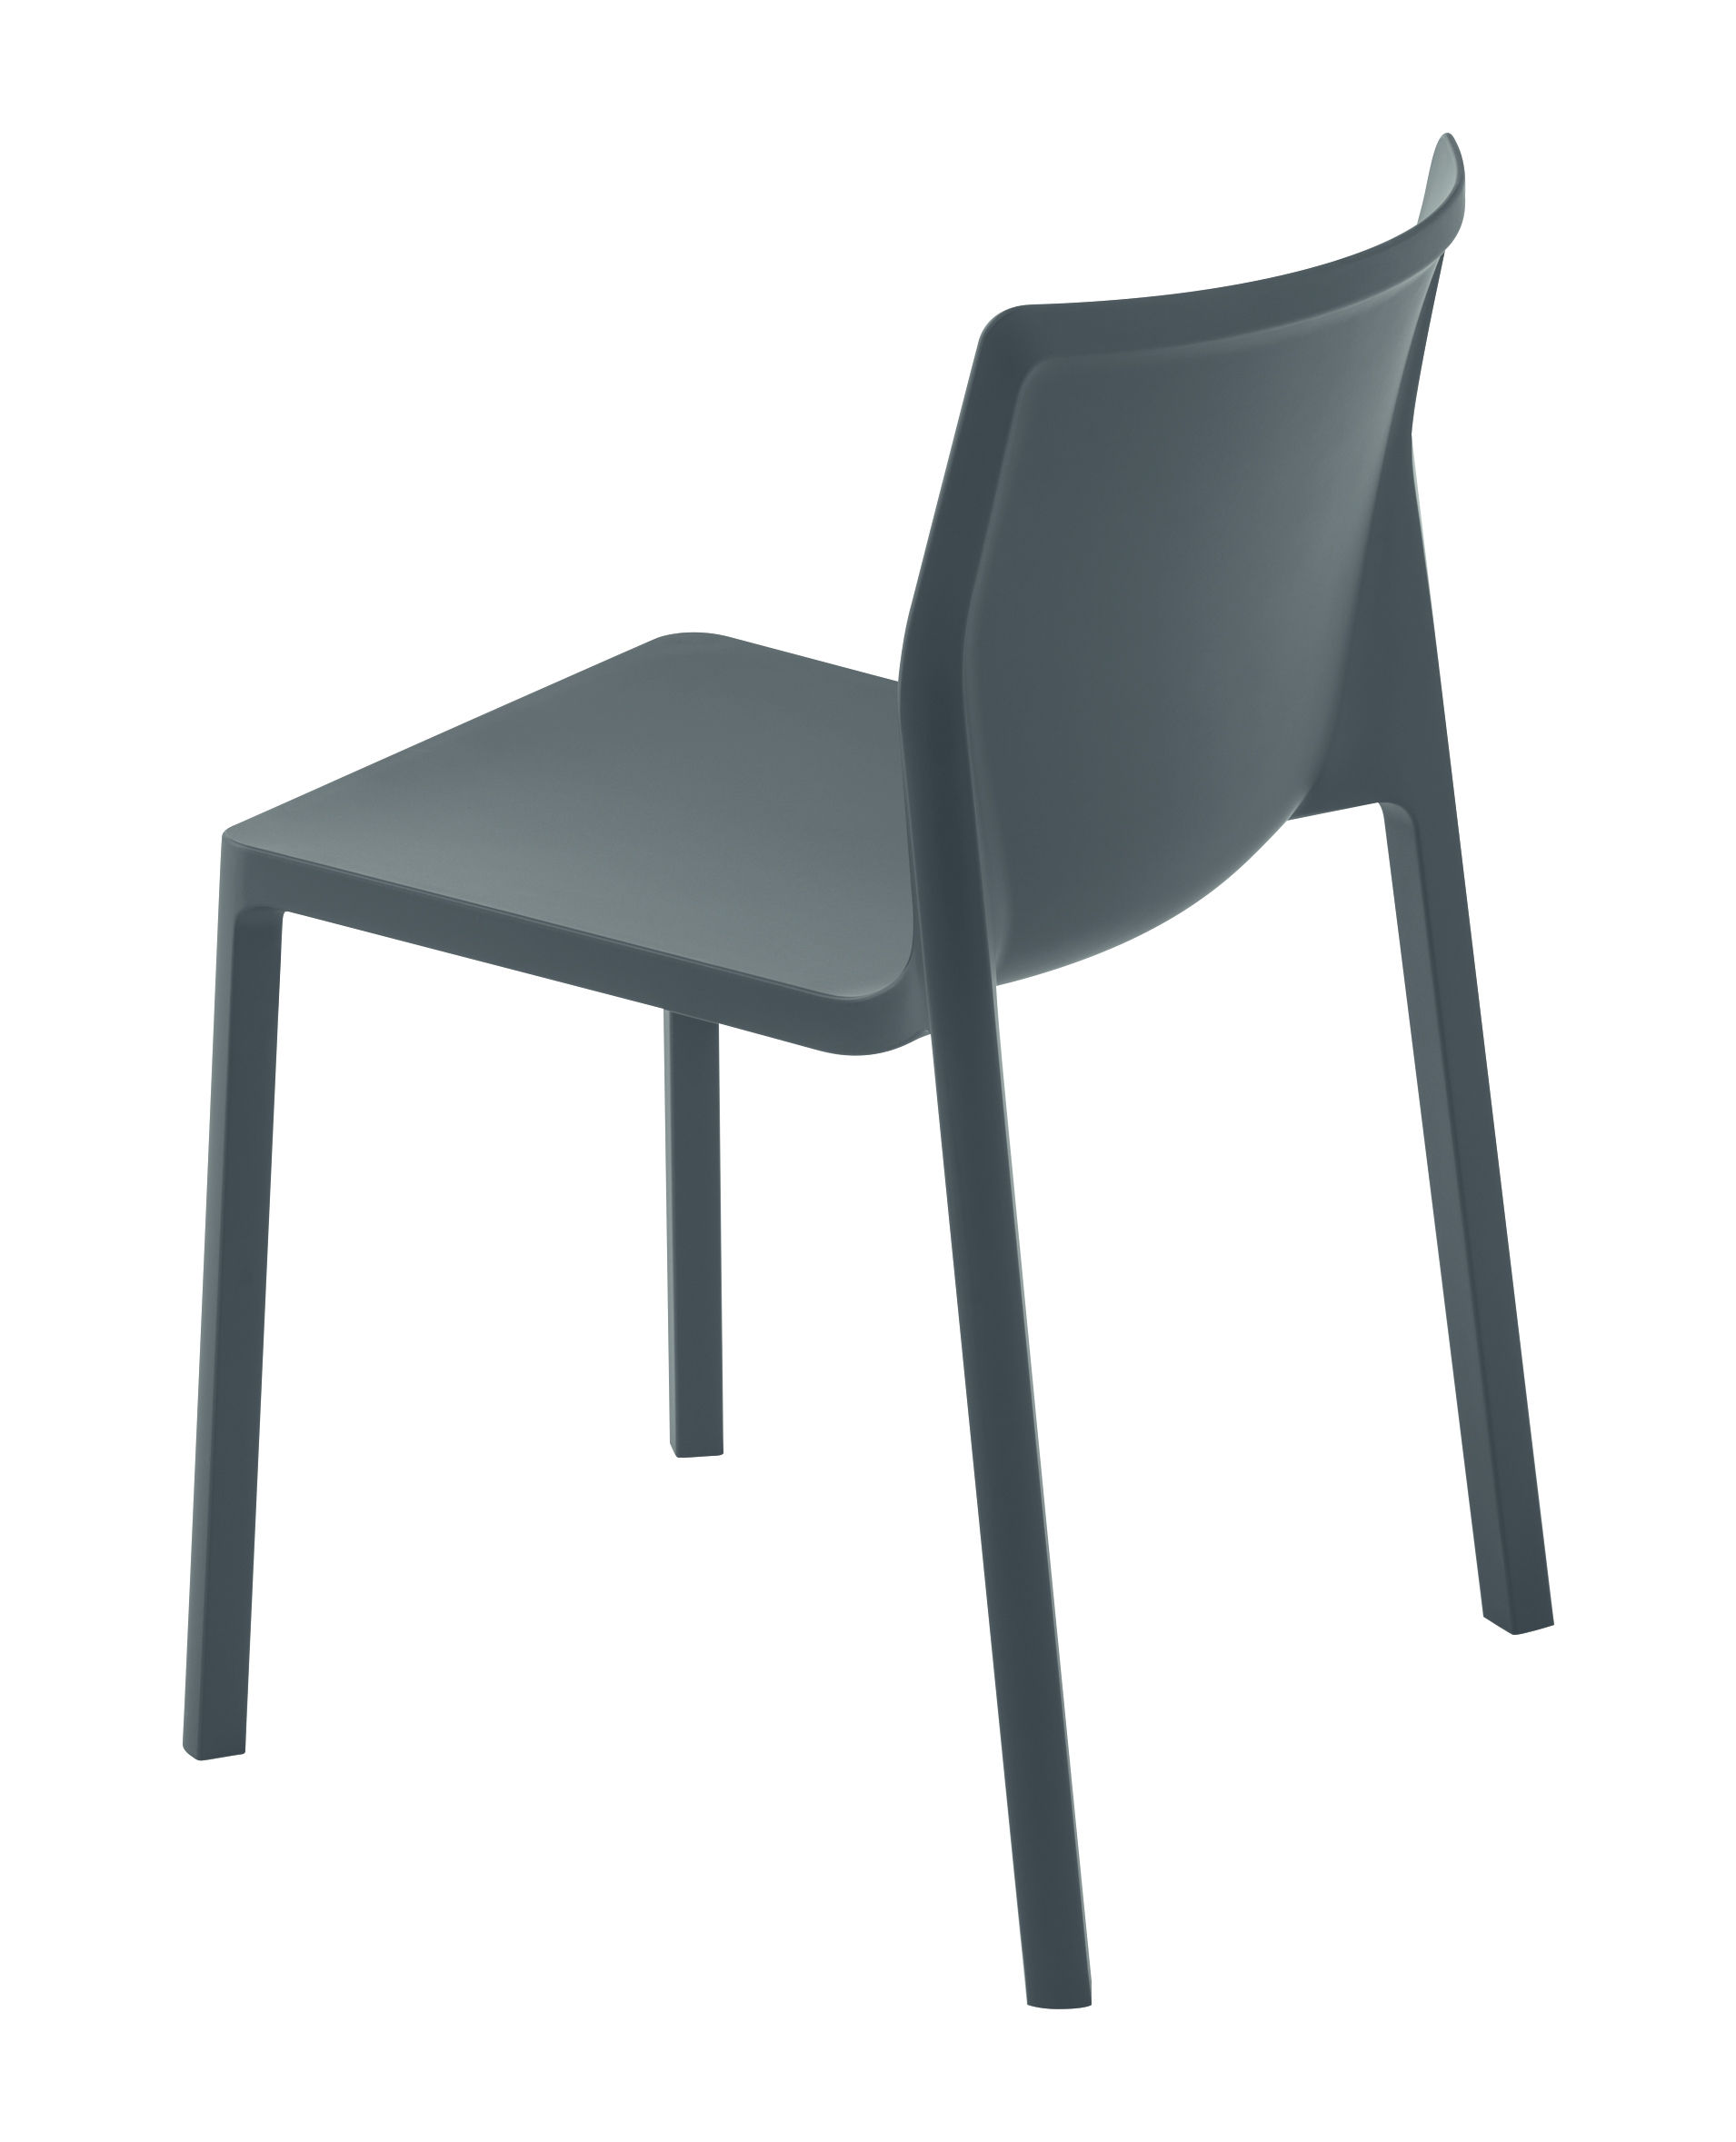 Furniture - Chairs - LP Stacking chair - Renforced polypropylen by Kristalia - Matt grey - Renforced polypropylen